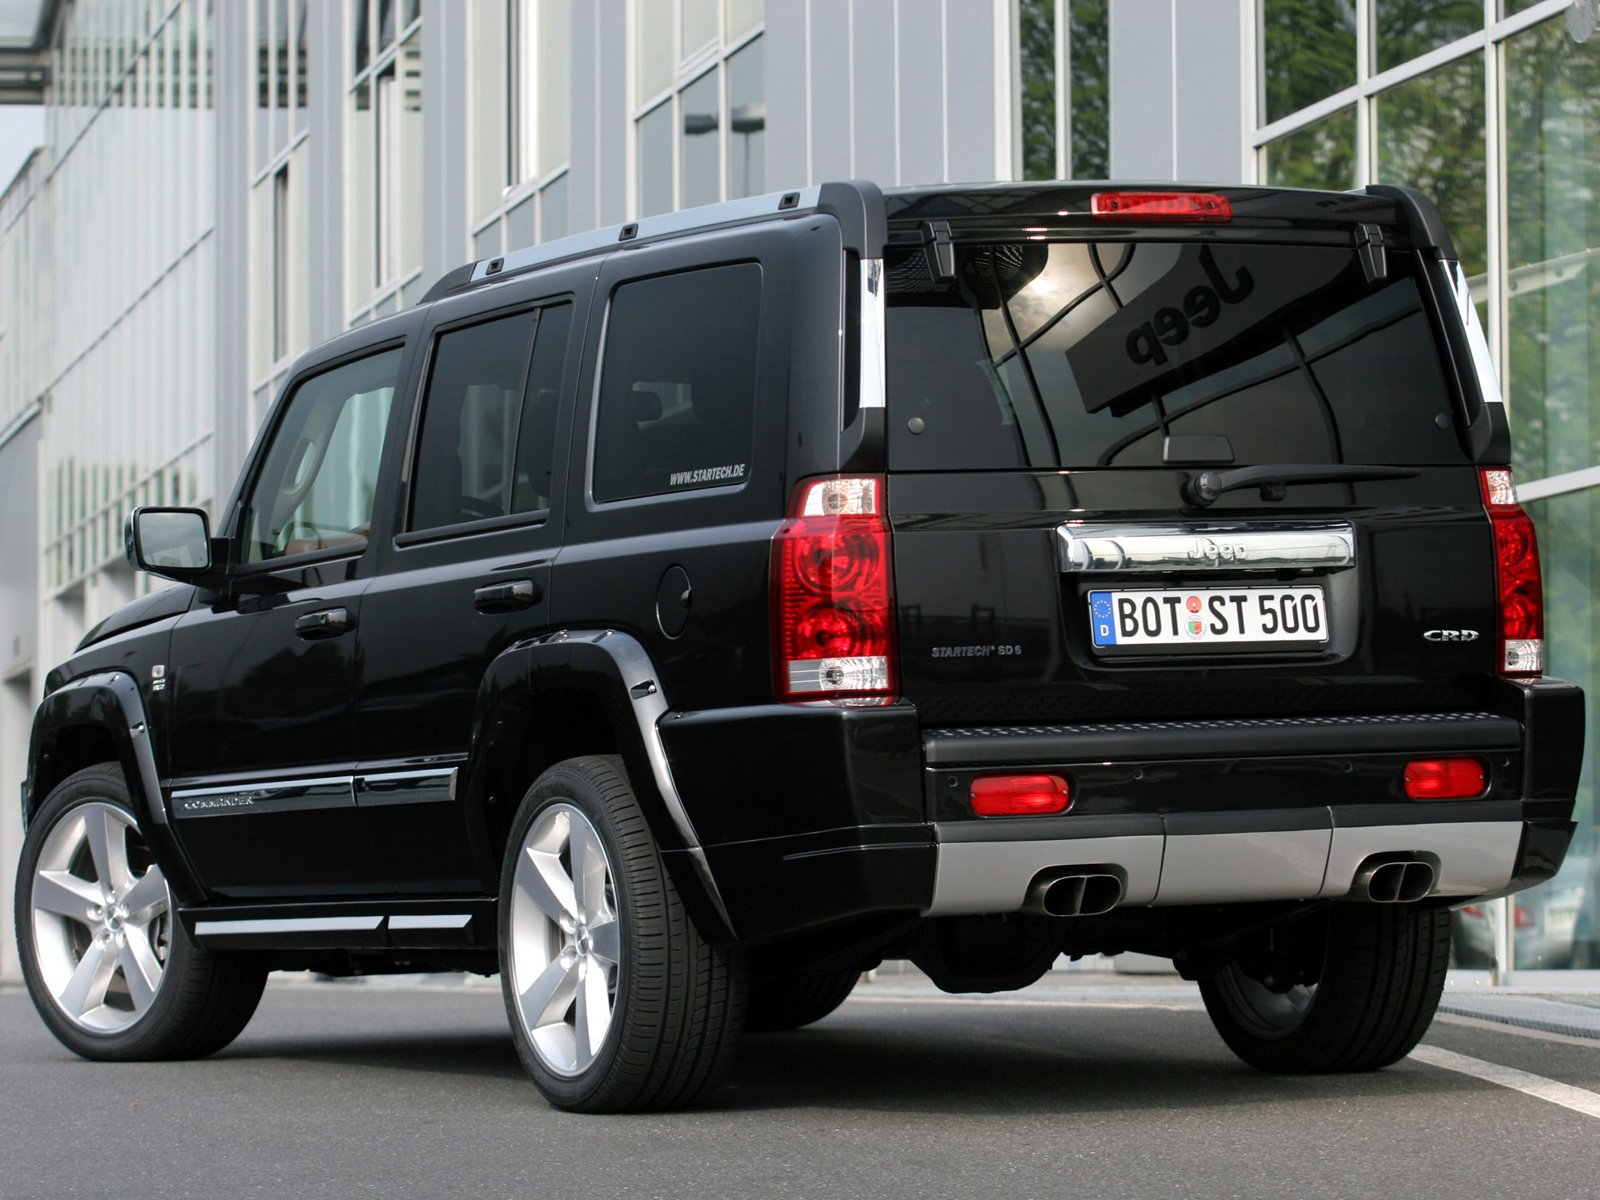 full new window jeep commander suv item size sold vehicles in may auction